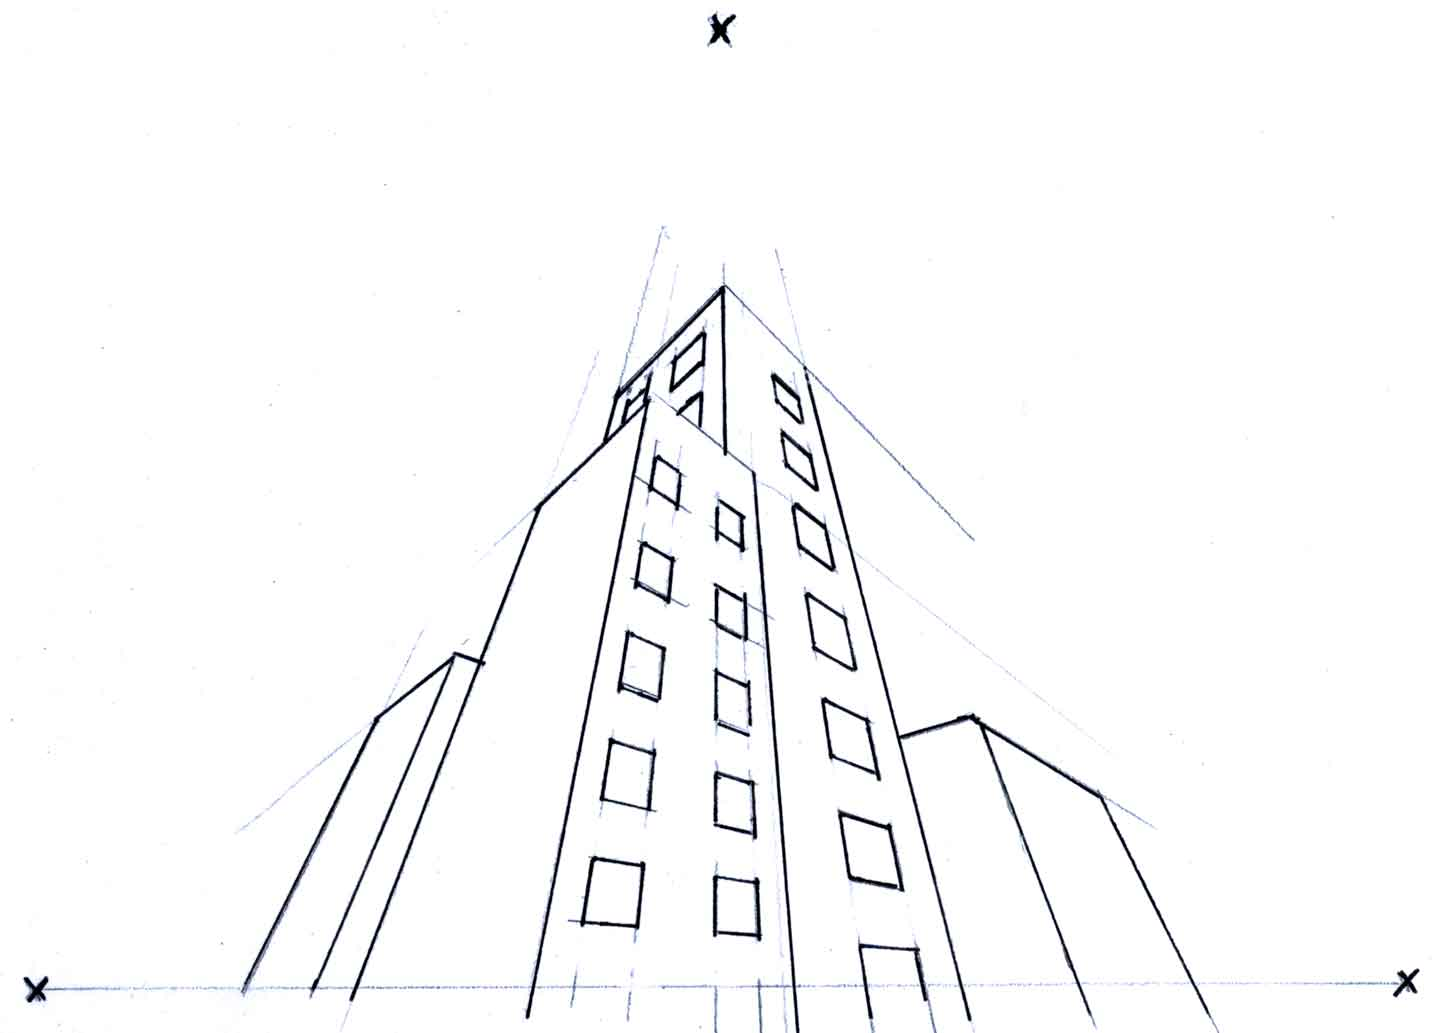 Online Perspective Drawing Lesson: How To Draw Buildings Using Three Point Perspective